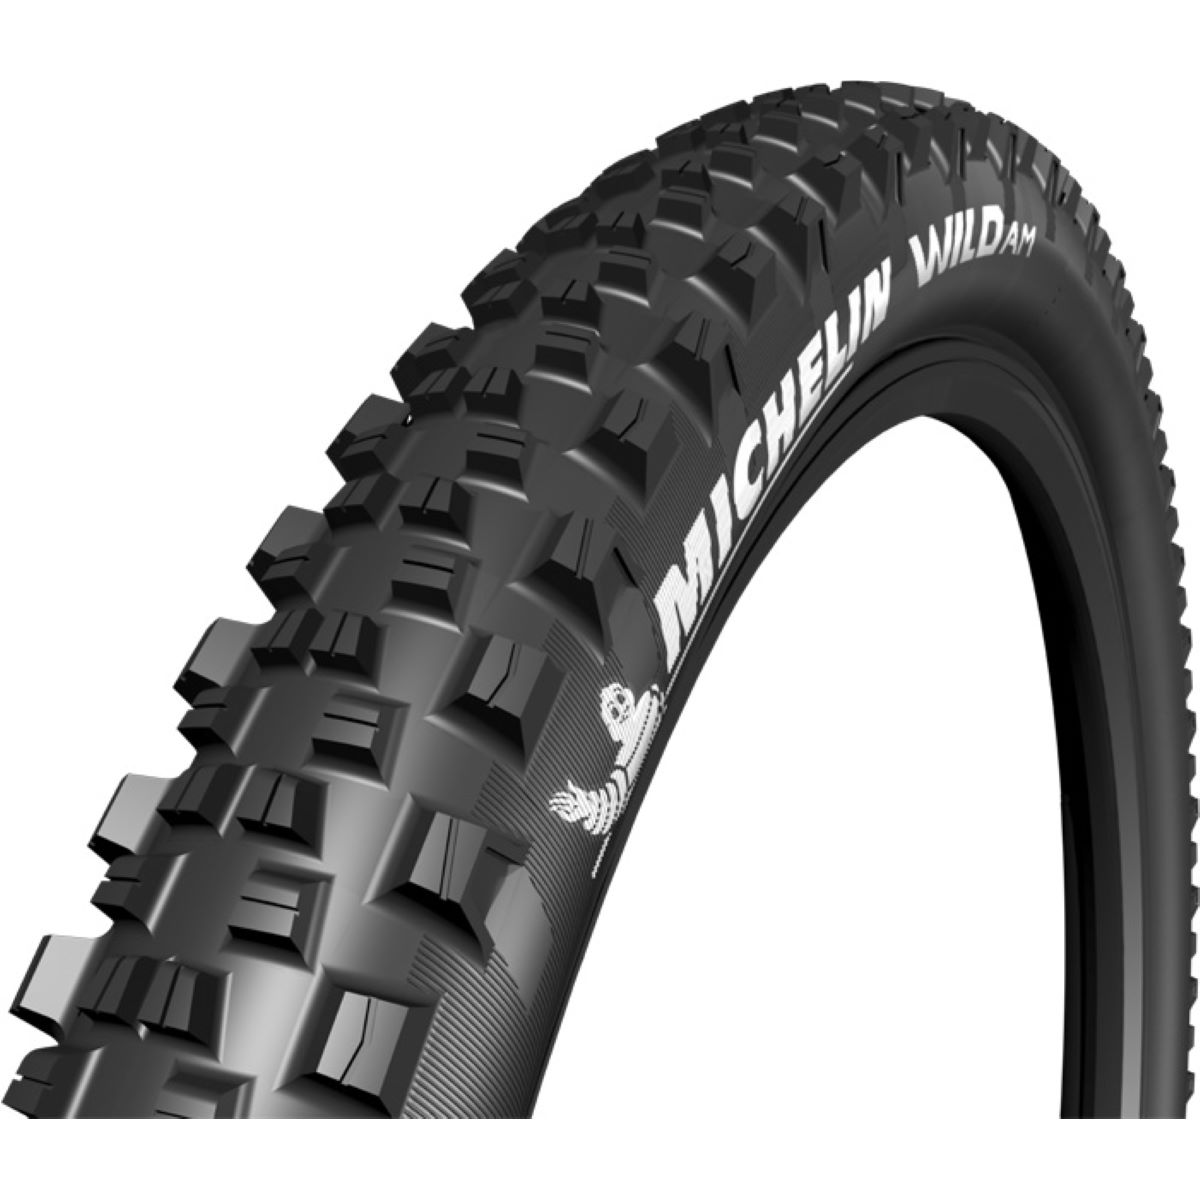 MICHELIN Michelin Wild AM Performance TLR MTB Tyre   Tyres